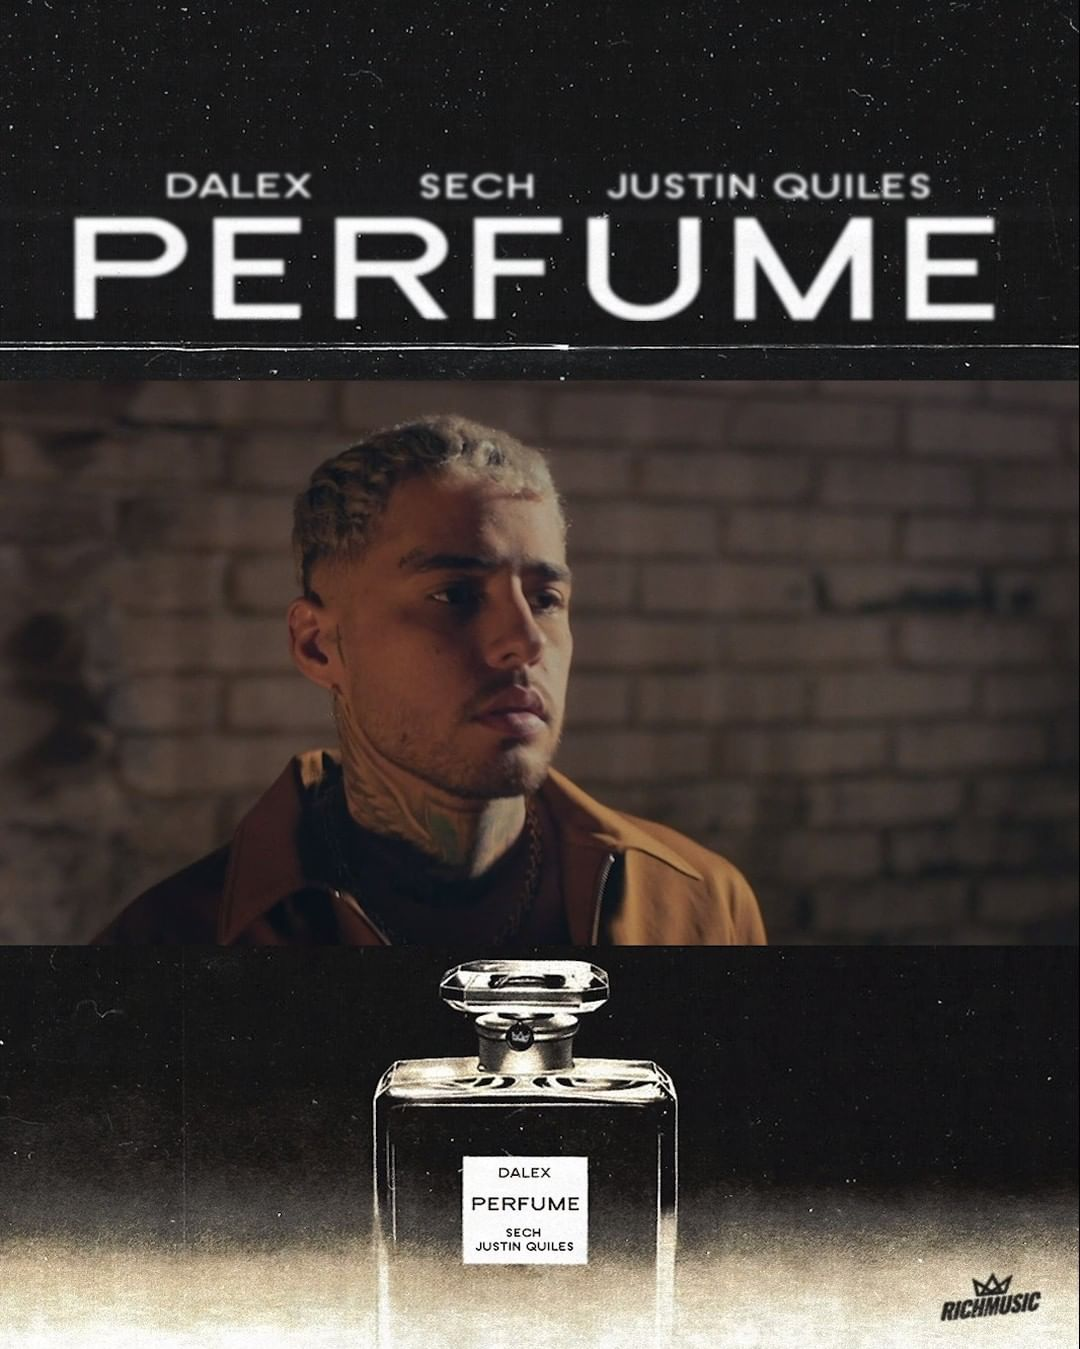 Photo of Se estrenó el vídeo 'Perfume' del nuevo single de Dalex junto a Sech y Justin Quiles